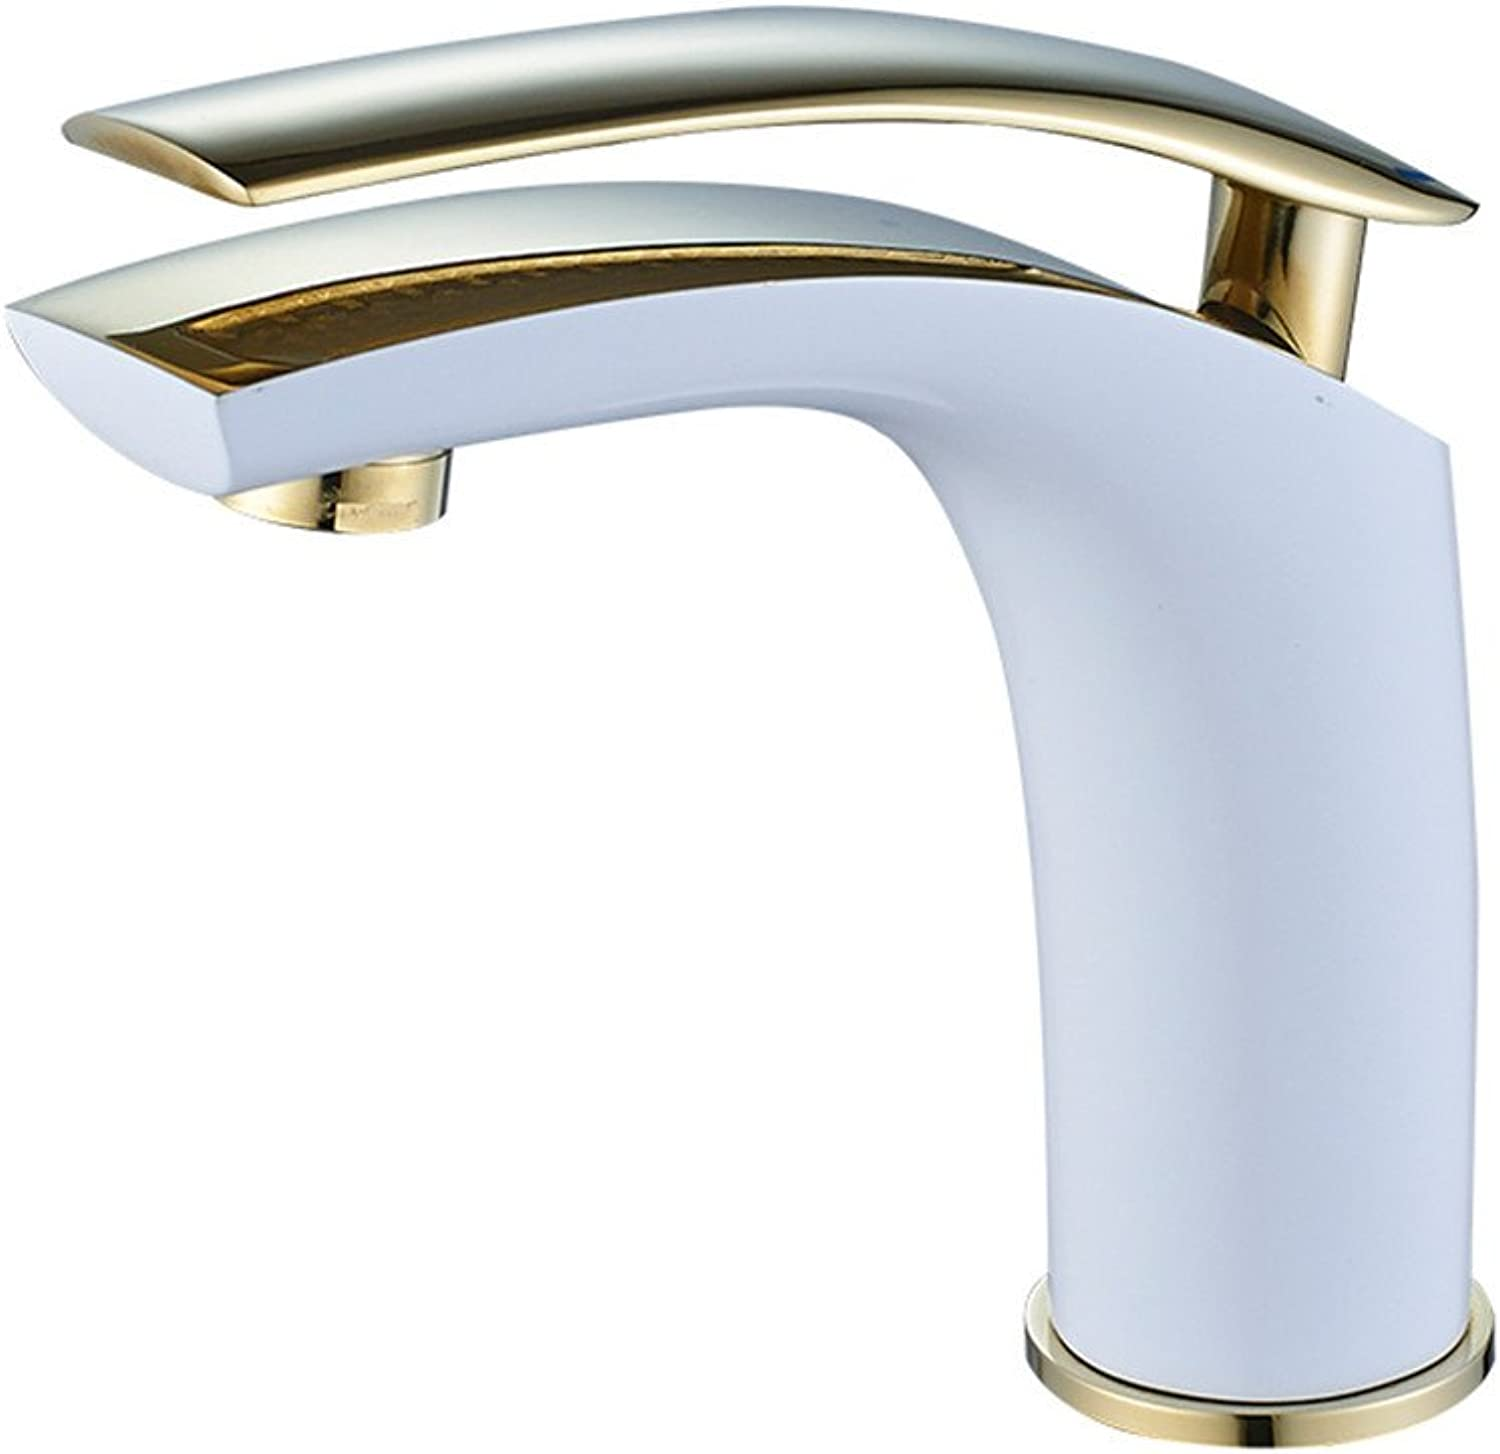 AQMMi Bathroom Sink Faucet Basin Mixer Tap Copper White Single Handle One Hole Cold and Hot Water golden Basin Sink Tap Bathroom Bar Faucet